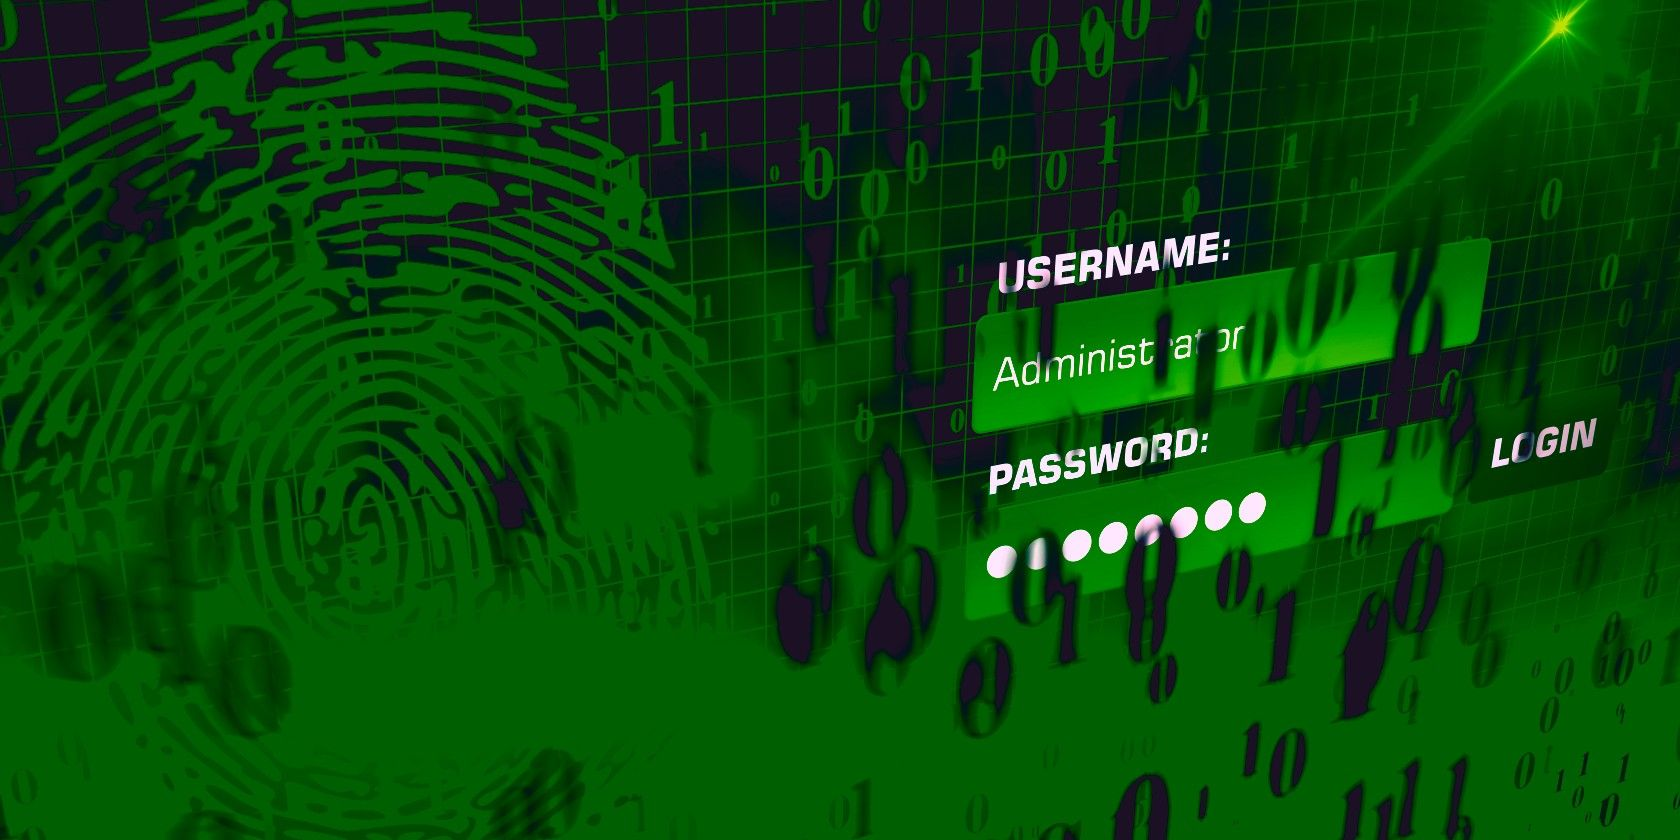 What is a Credential Stuffing Attack?